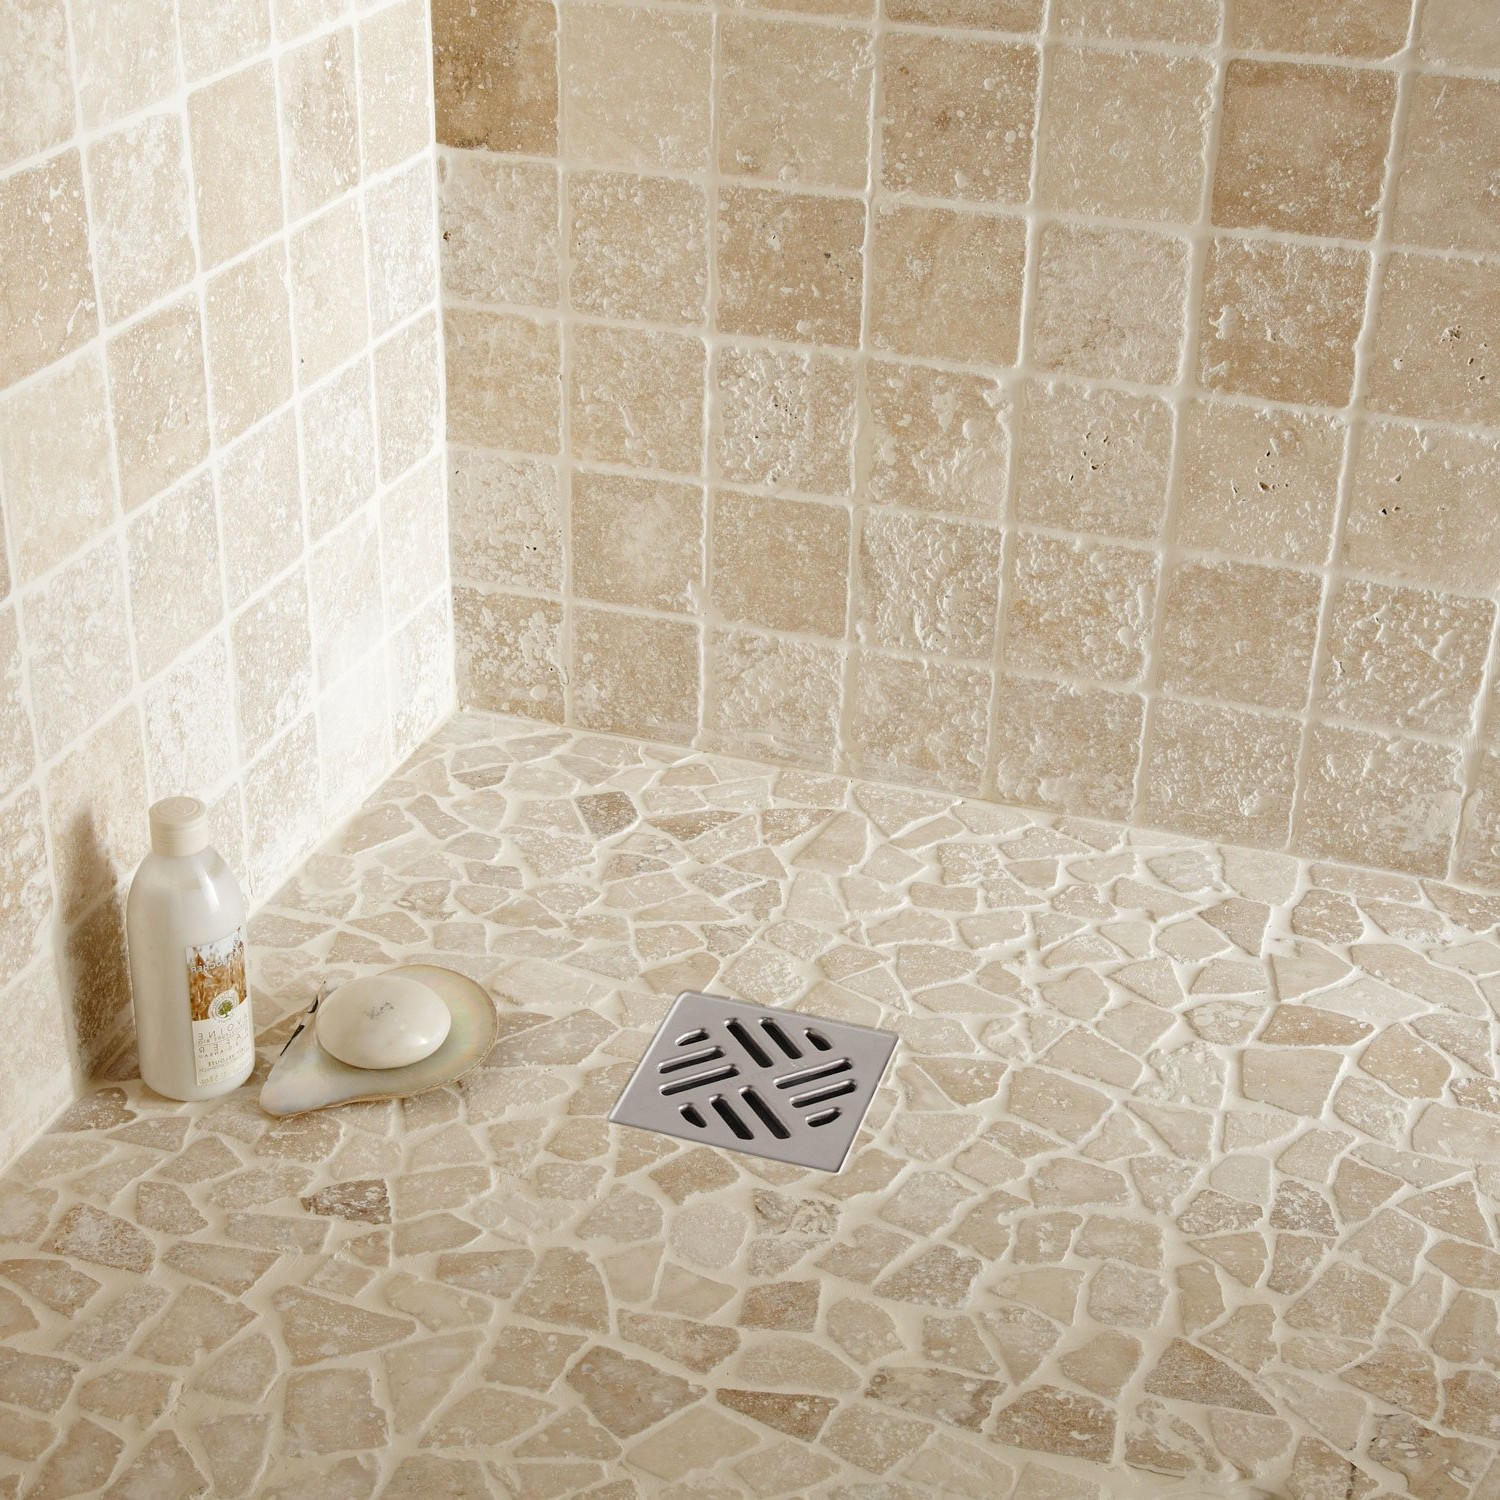 Best deco salle de bain travertin gallery for Carrelage castorama